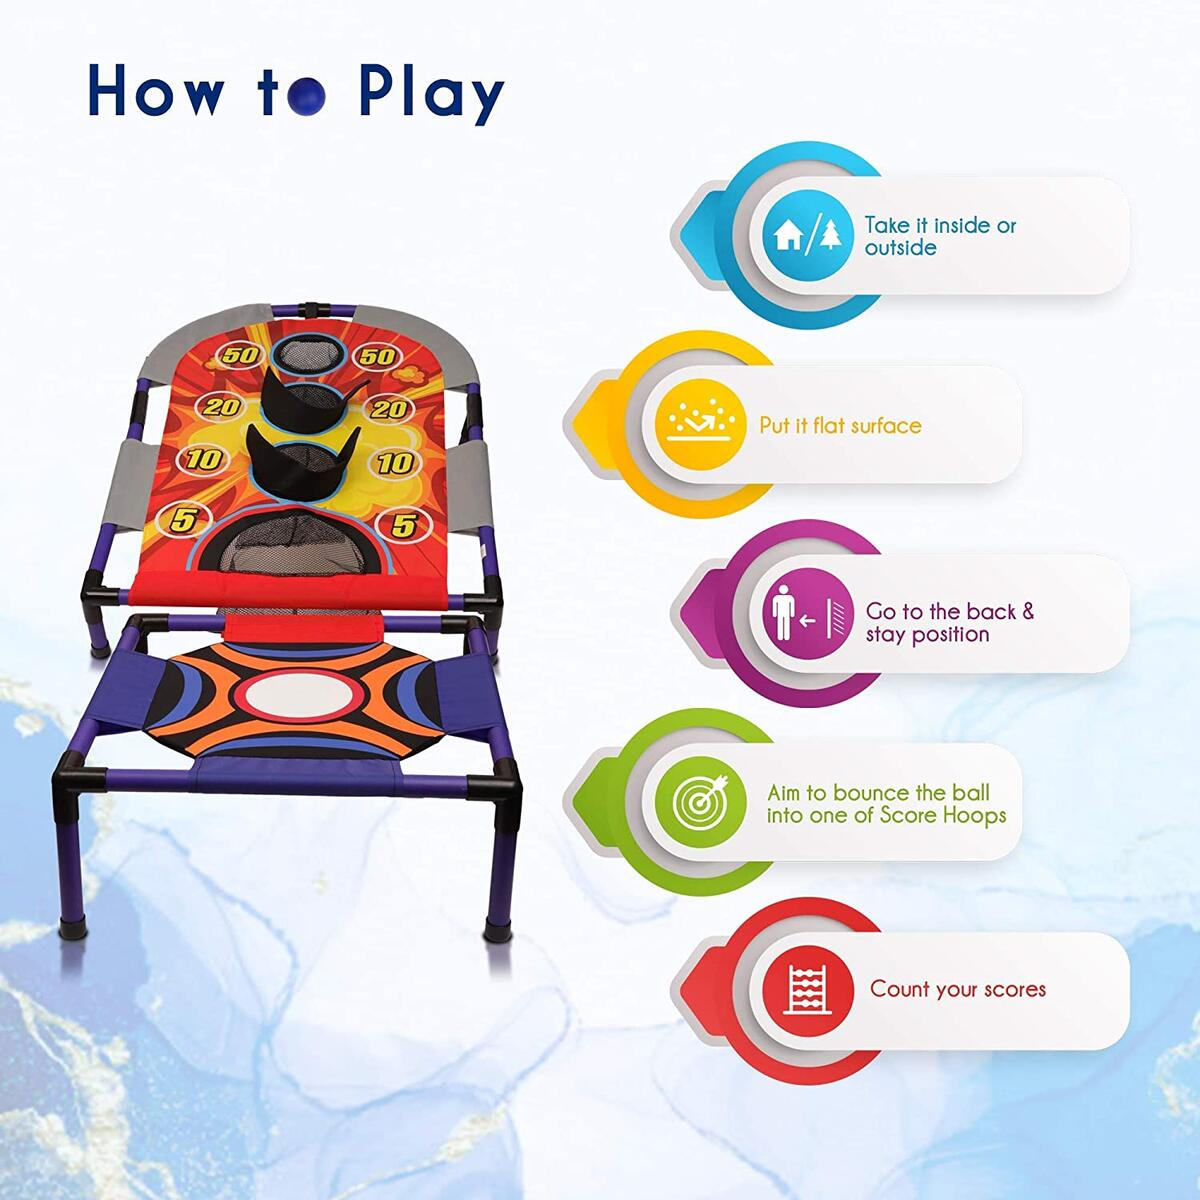 Point Games TrampShot Ball Toss Game, Indoor or Outdoor Arcade Sport Toy, Easy to Install, Fun and Entertaining - Recommended for Ages 5+